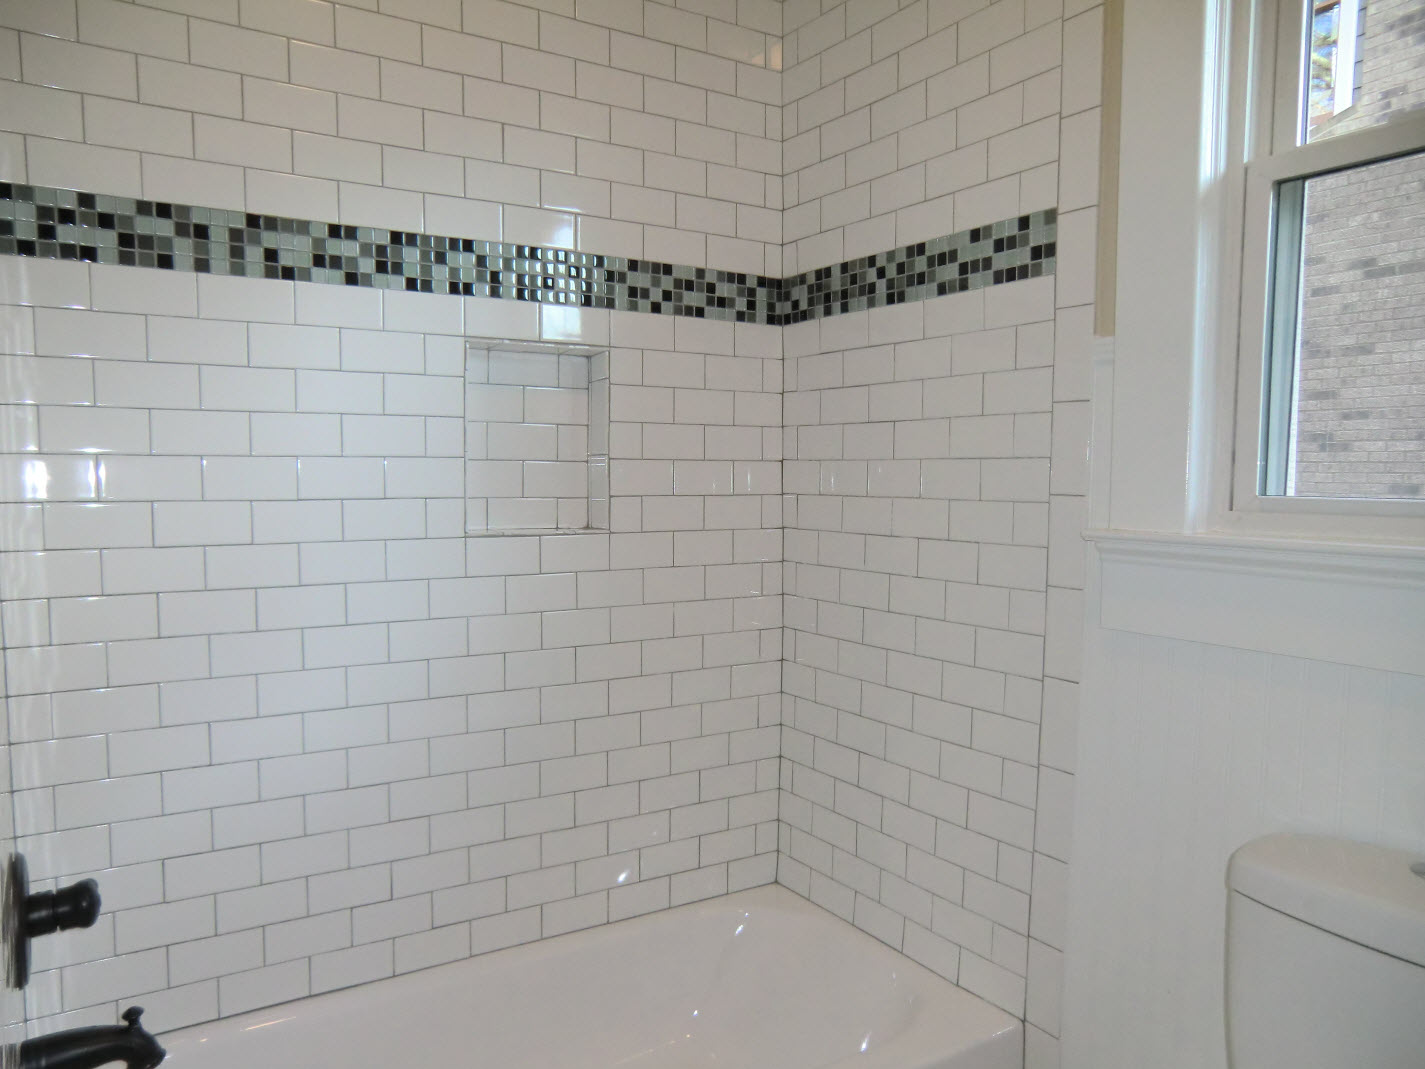 Guest Bath Tub With Subway Tile Surround Jpg 1425 1069 Bathroom